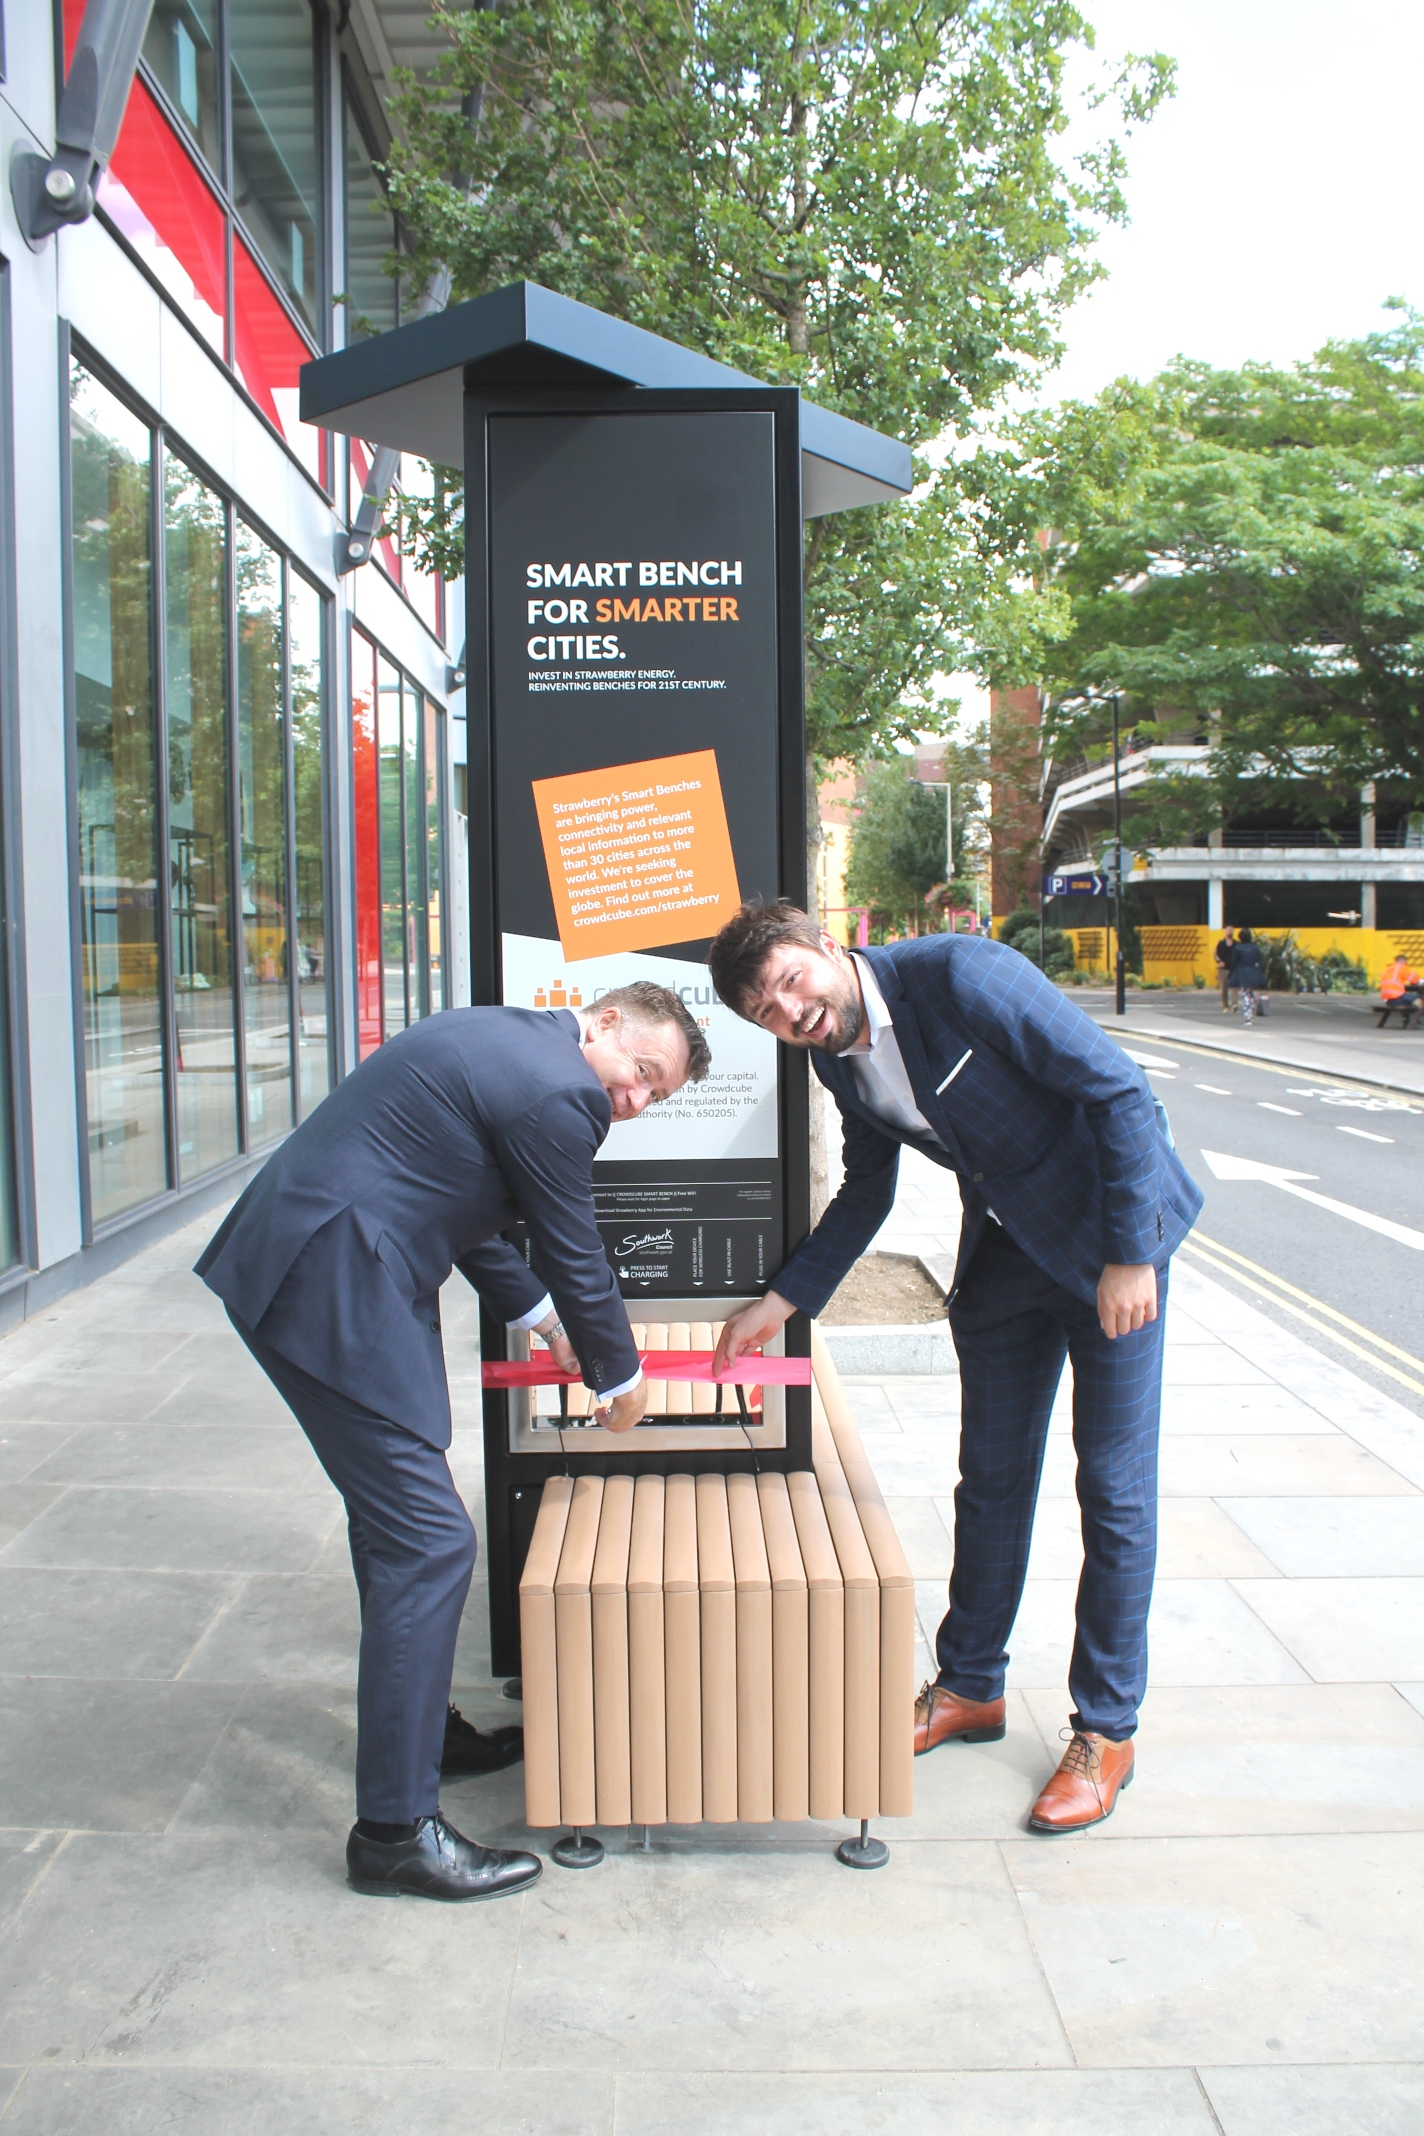 More solar-powered 'smart benches' appear on SE1 streets